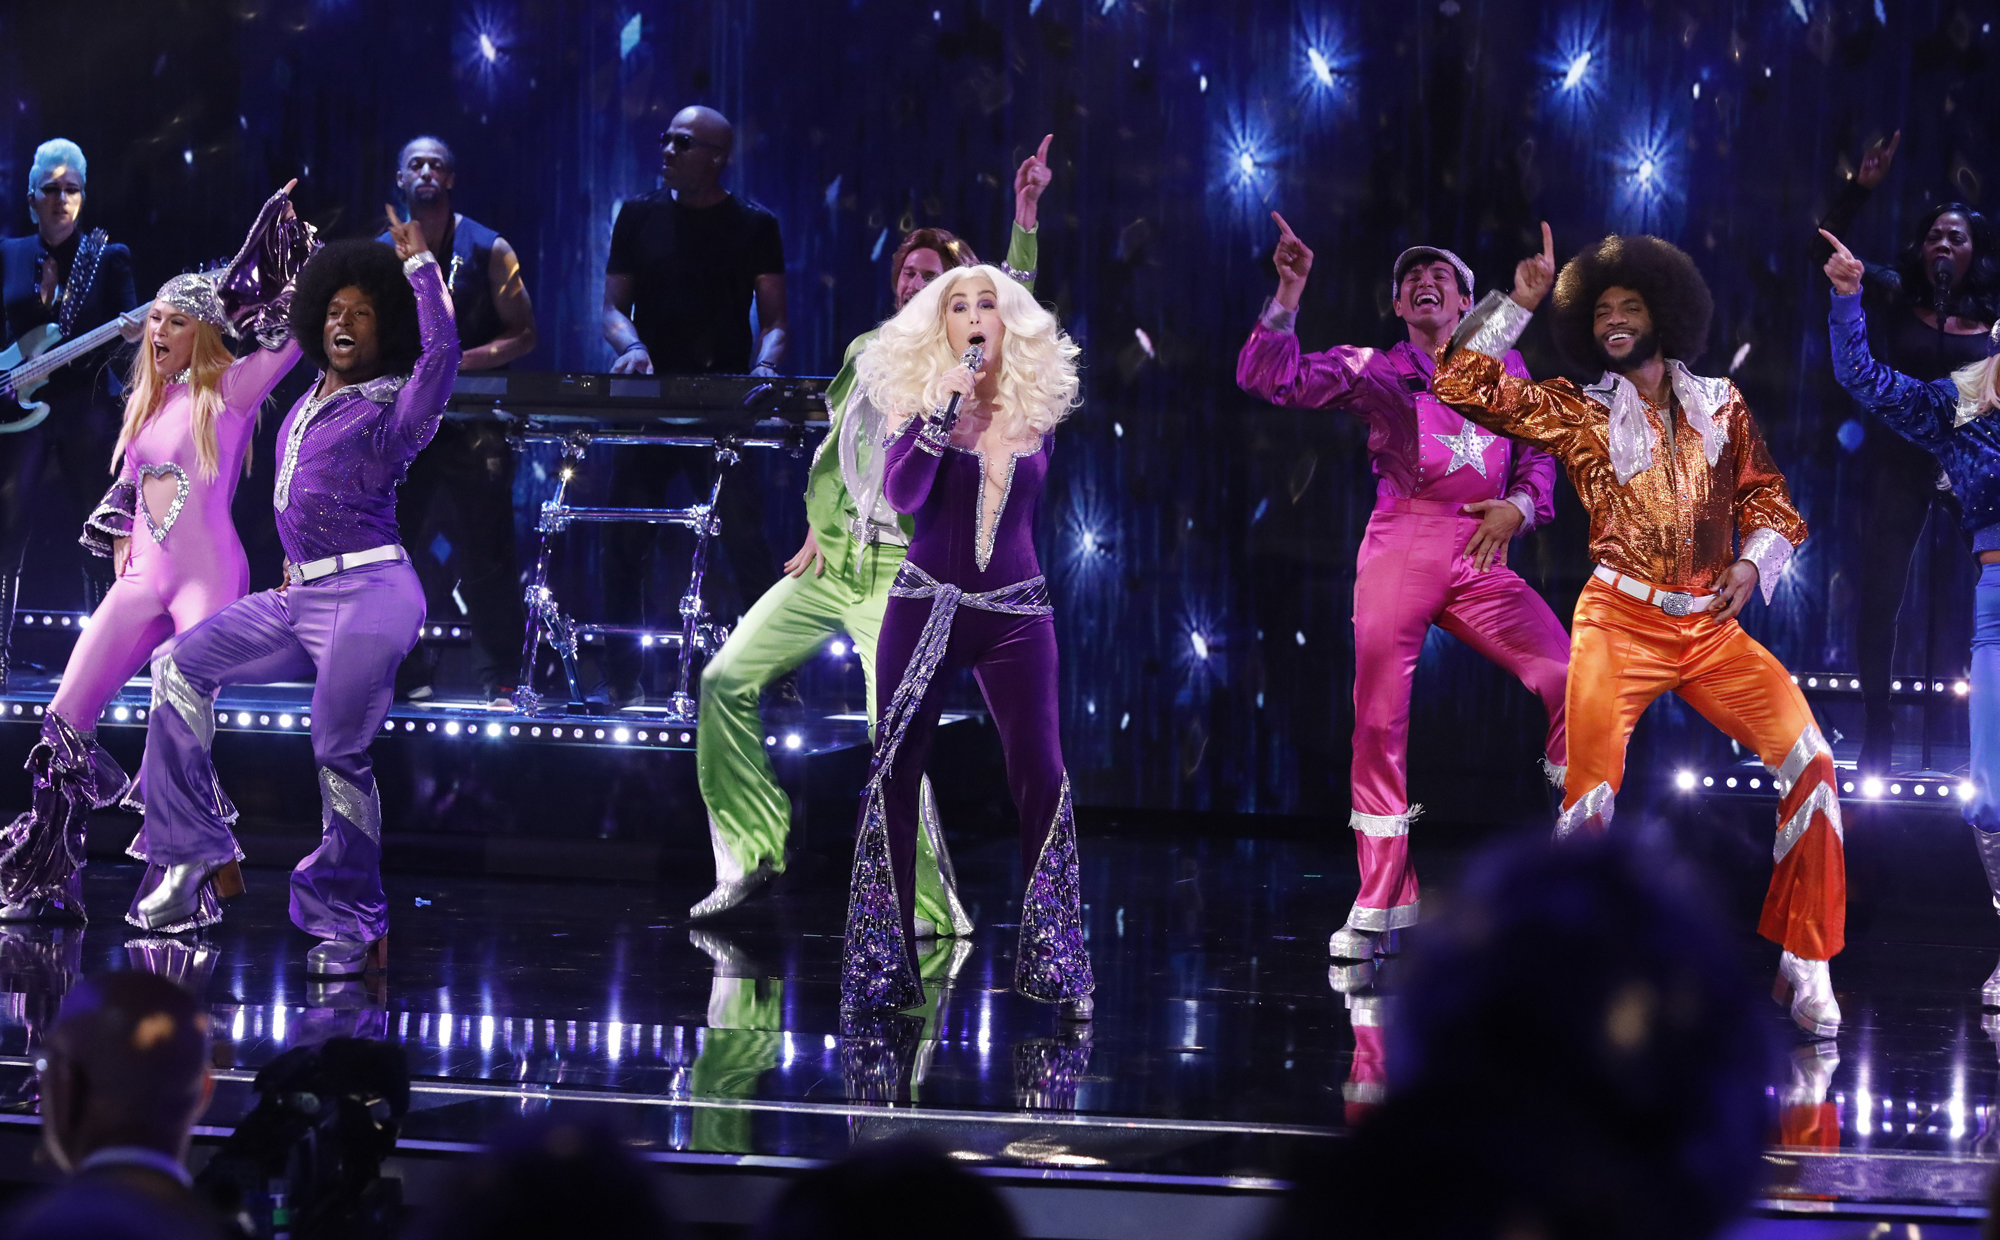 Cher Wore a Super Low-Cut Jumpsuit While Performing on the America's Got Talent Finale